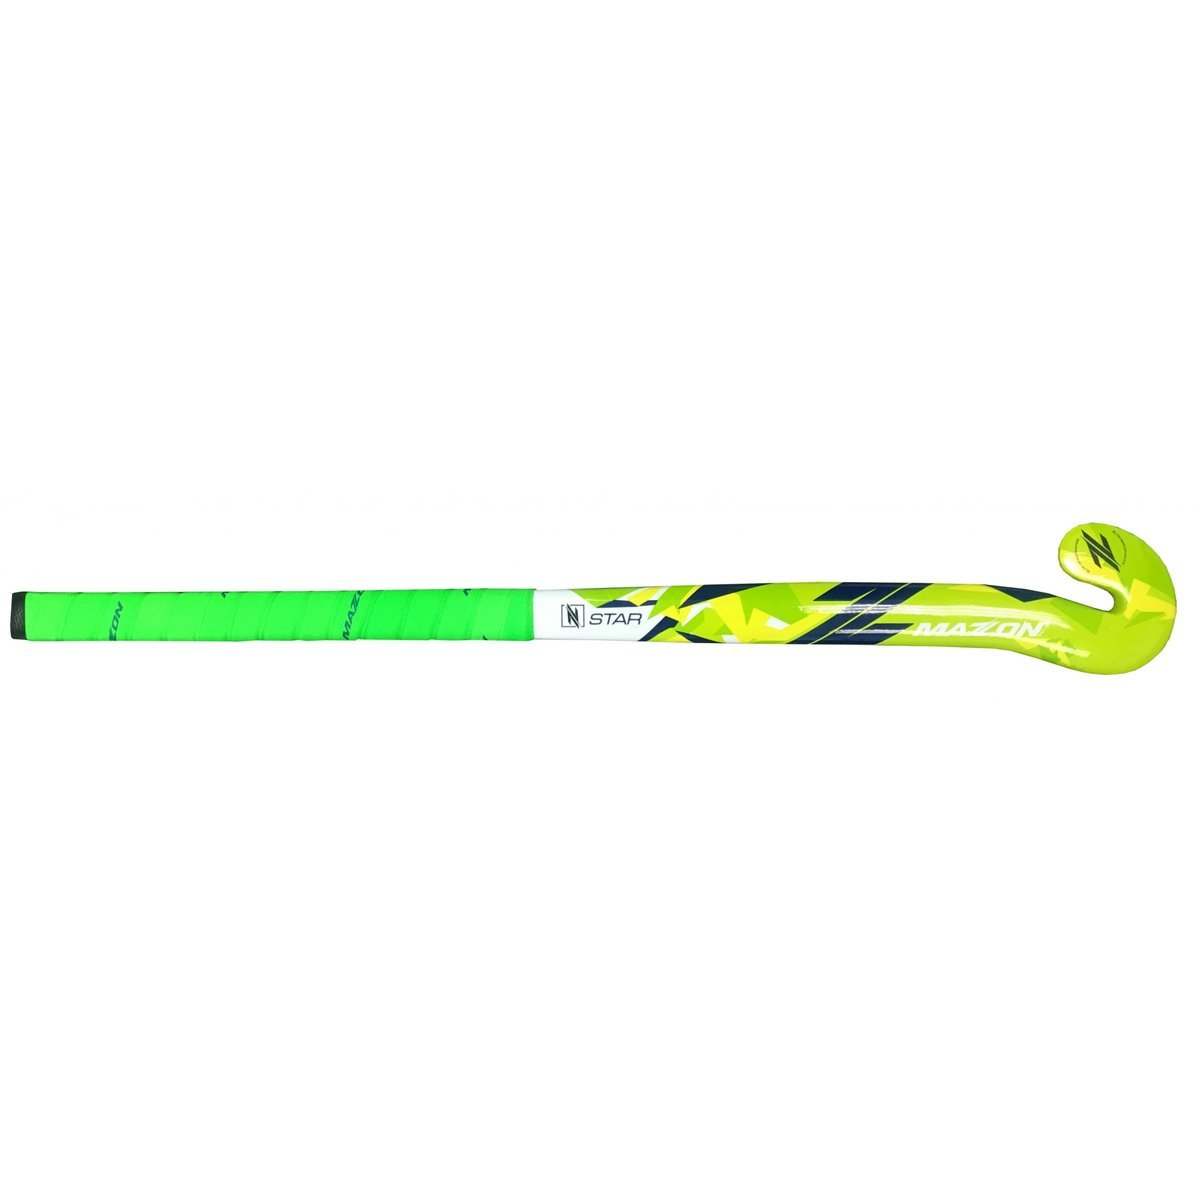 Mazon Star GK Junior - Just Hockey